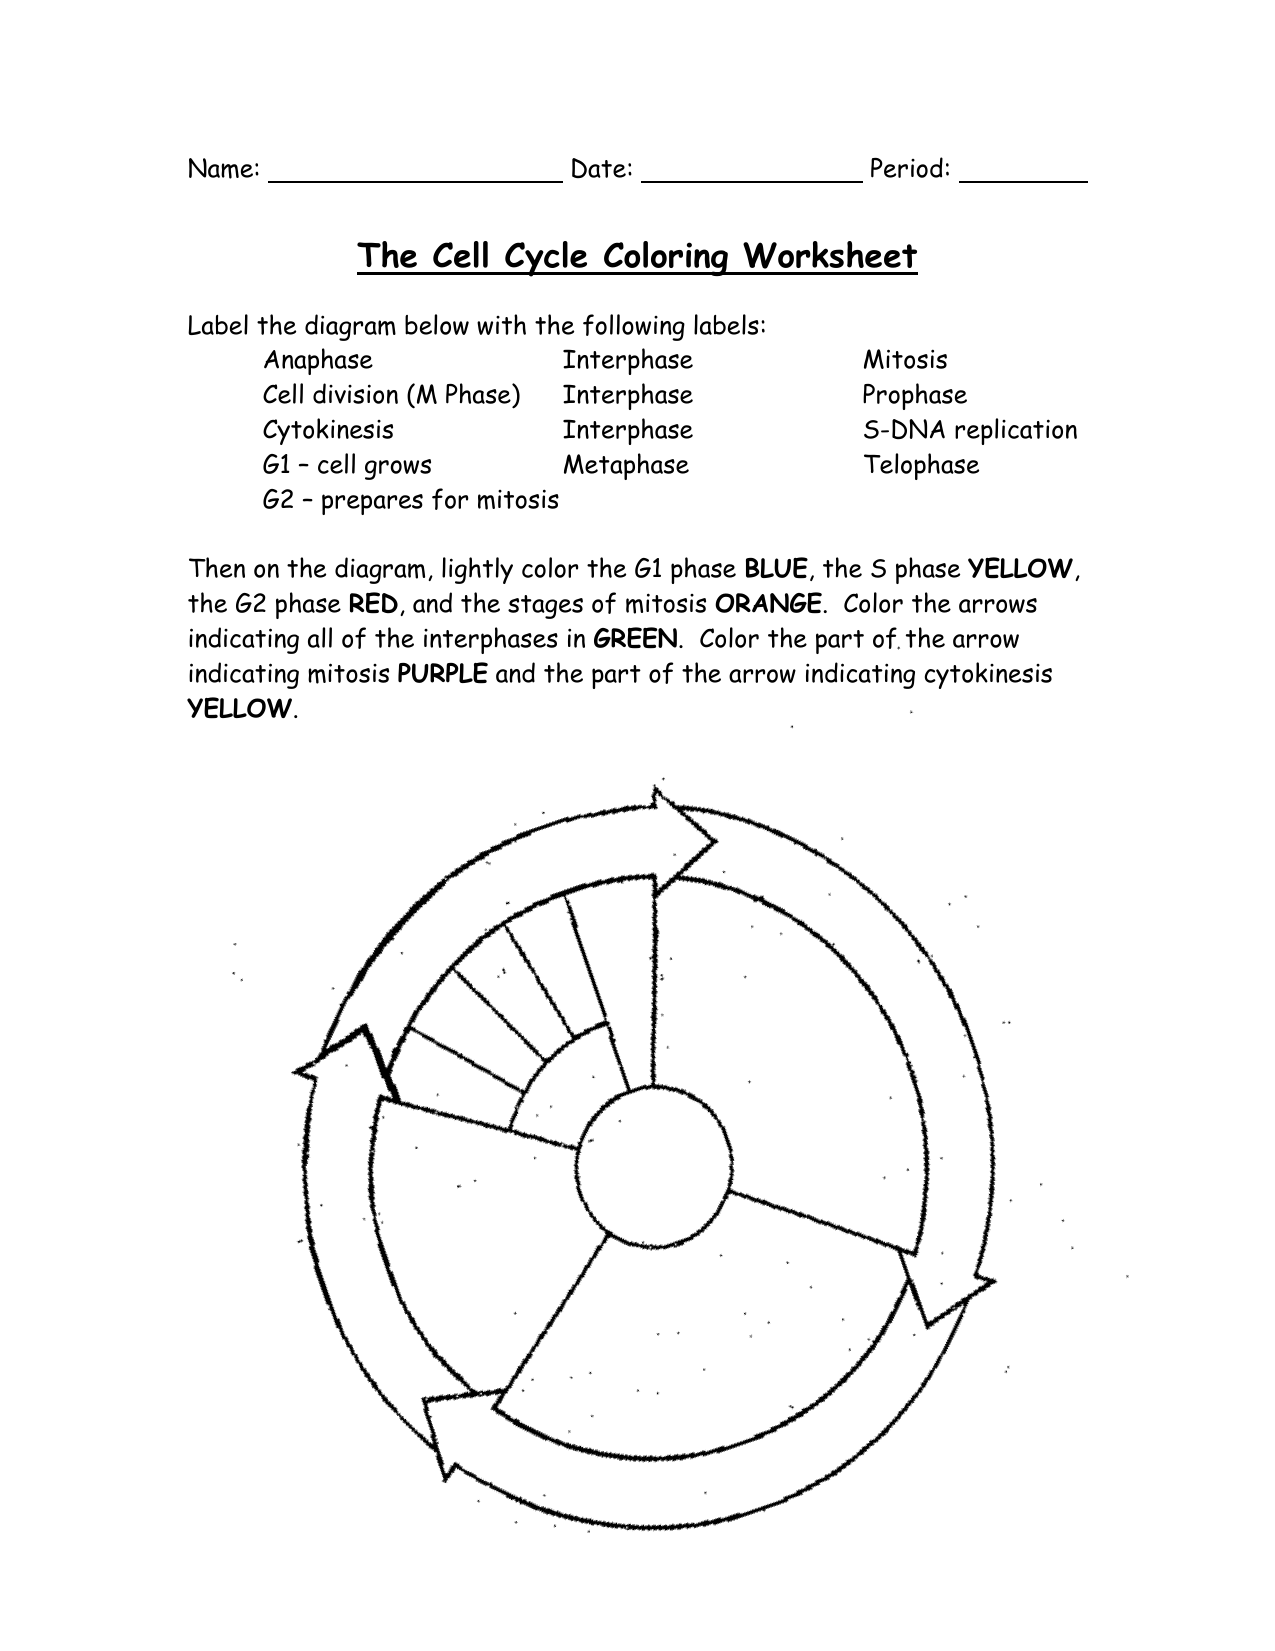 cell cycle coloring worksheet the cell cycle coloring worksheet printable pdf download cycle worksheet coloring cell